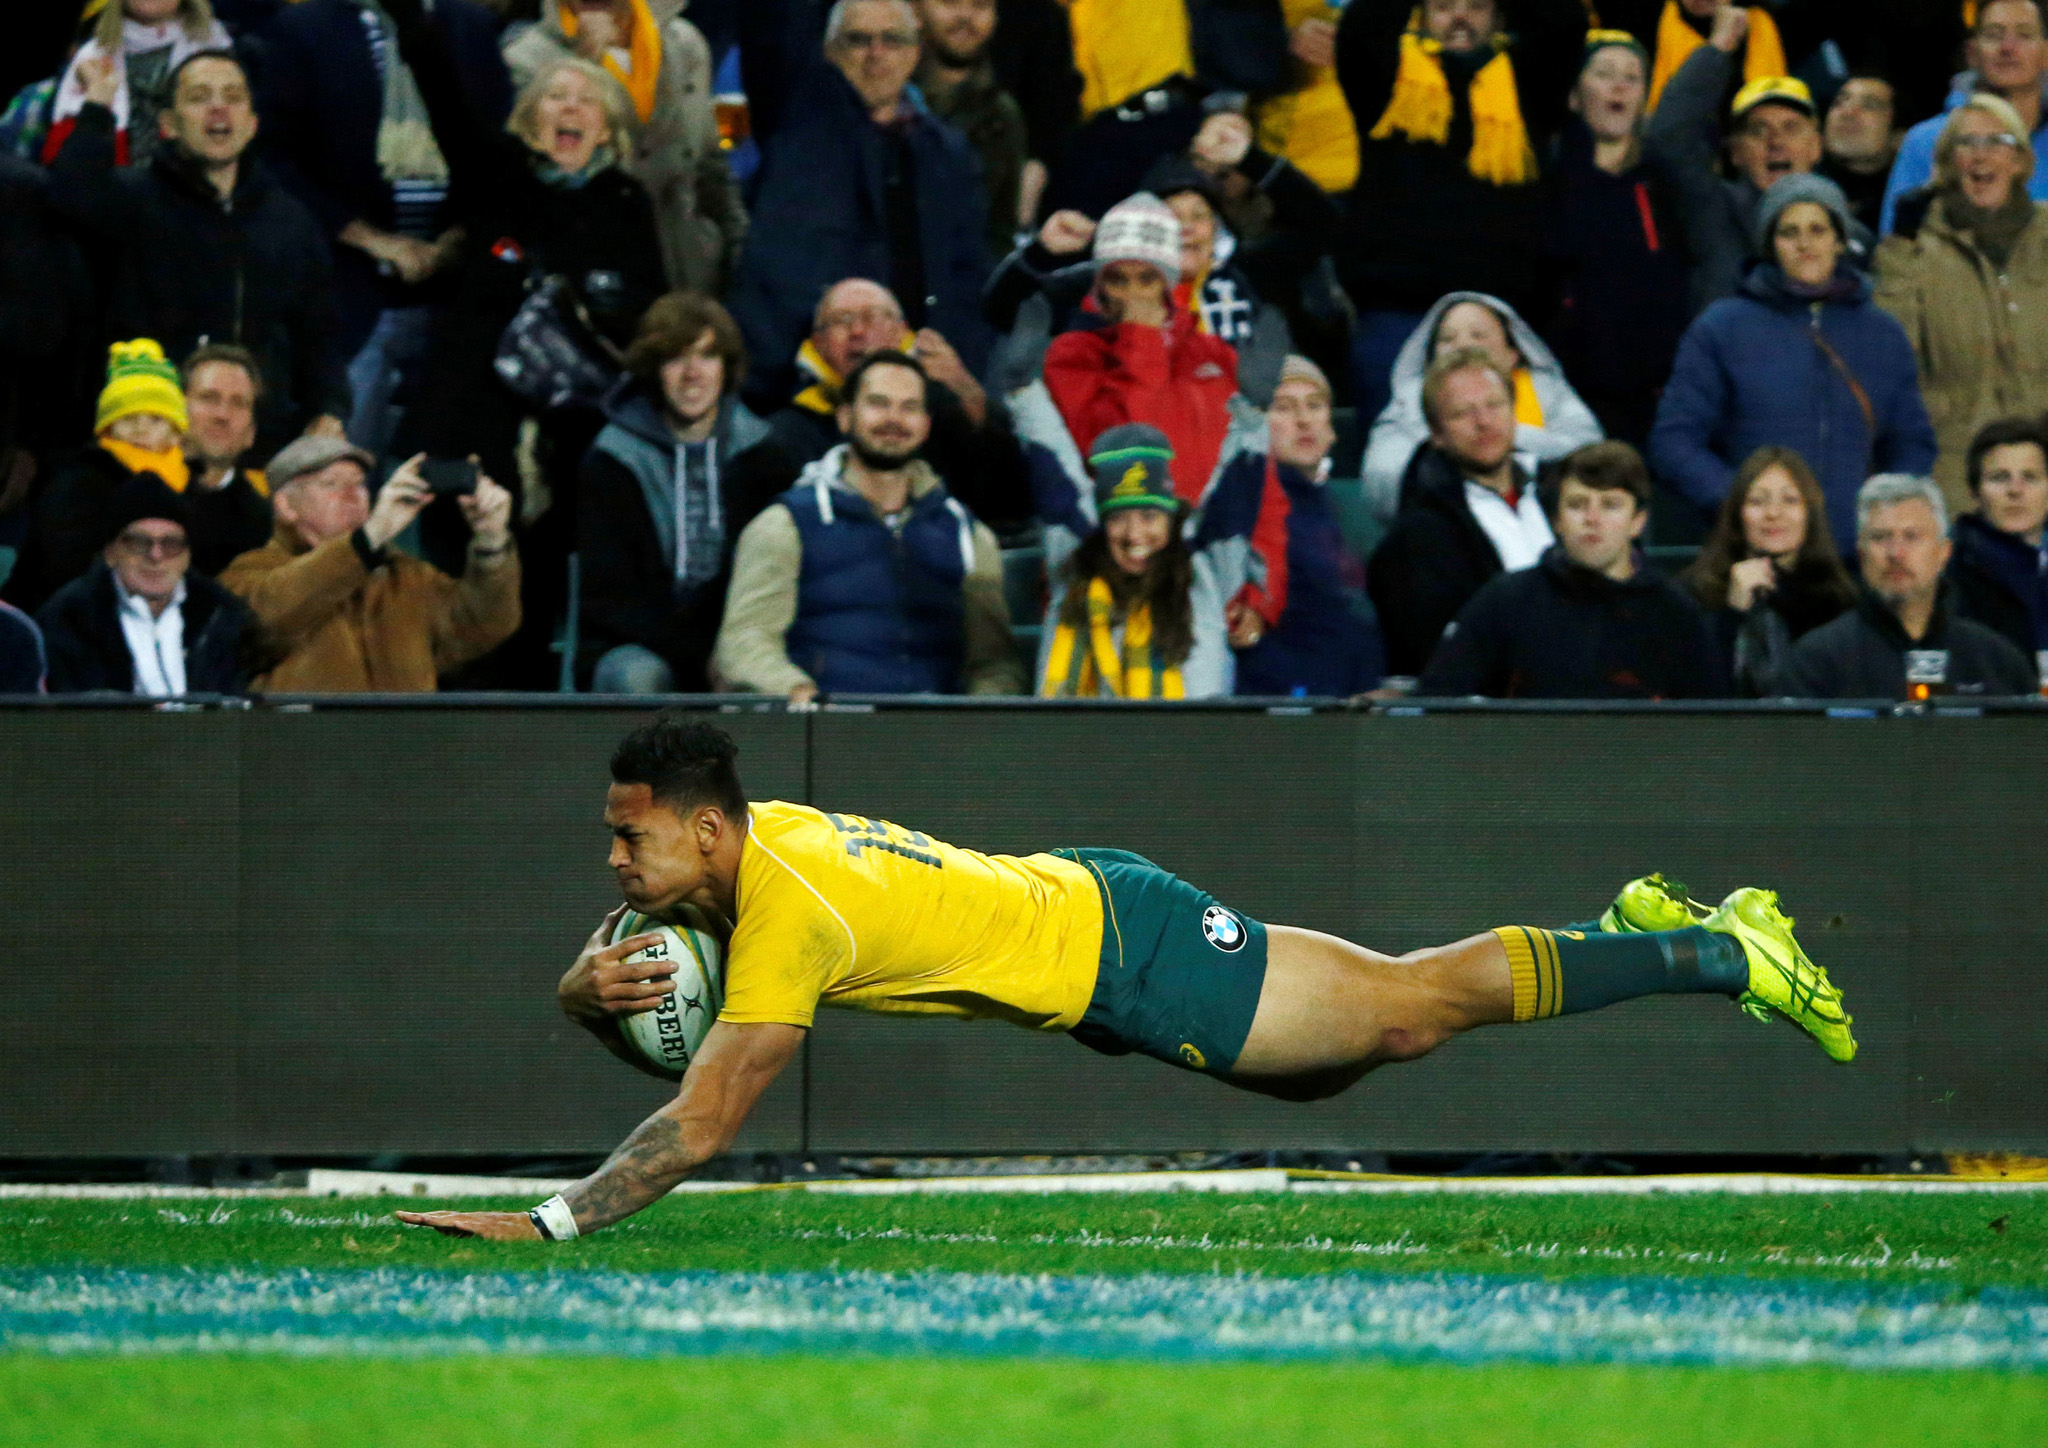 Rugby Union - Rugby Test - England v Australia's Wallabies  - Sydney, Australia - 25/06/16.  Australia's Israel Folau scores a try in the second half.     REUTERS/Jason Reed